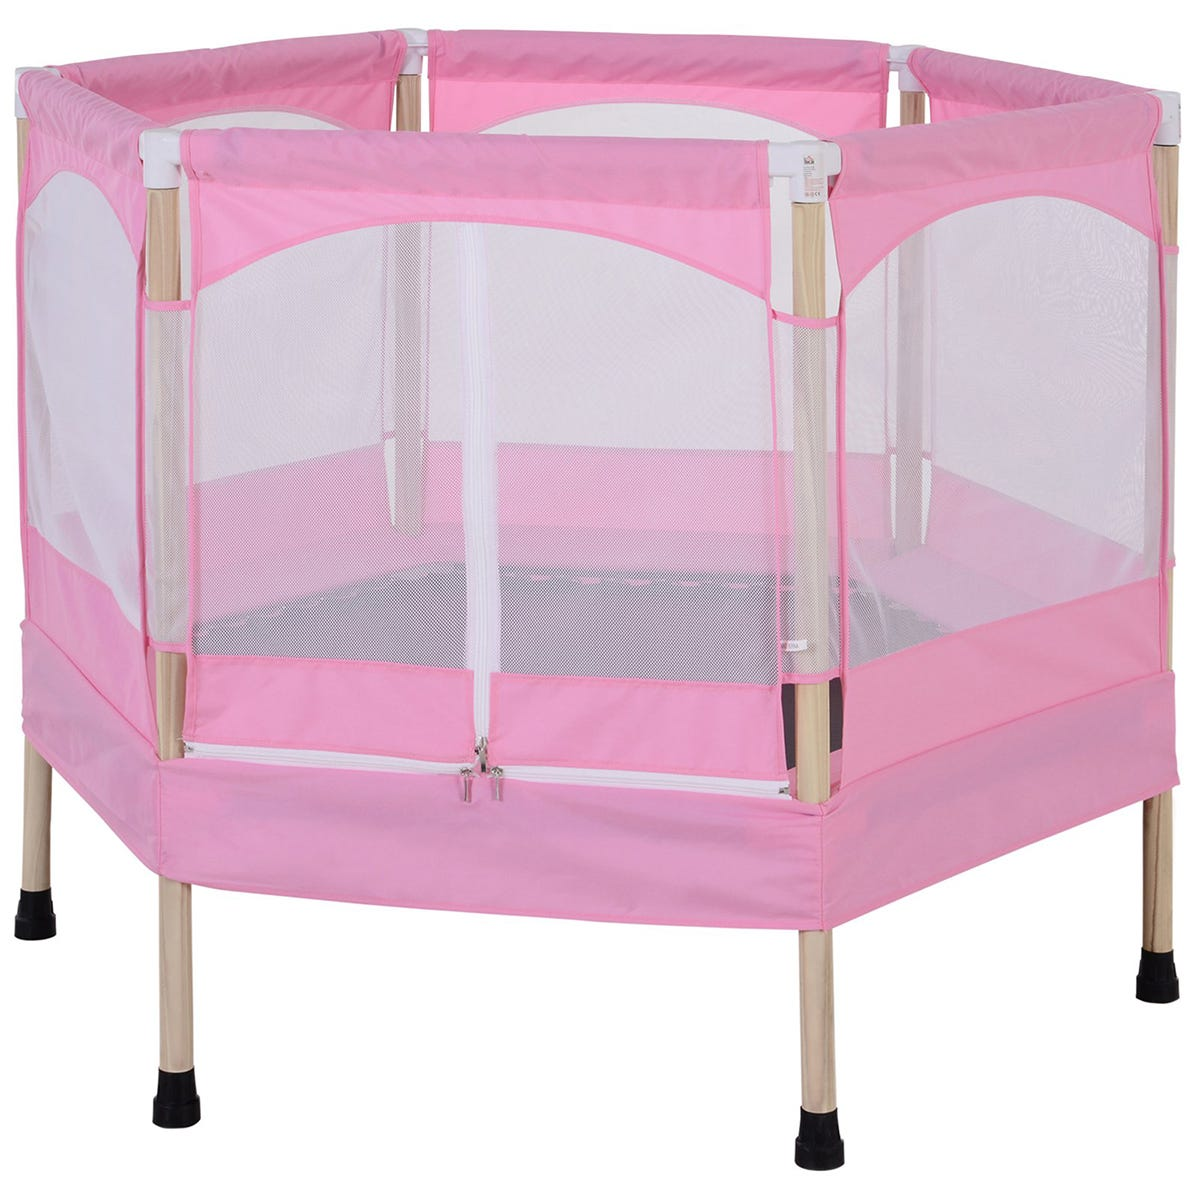 Jouet 3ft Kids Trampoline Outdoor Bounce Hexagon with Safety Enclosure Net & Spring Pad - Pink